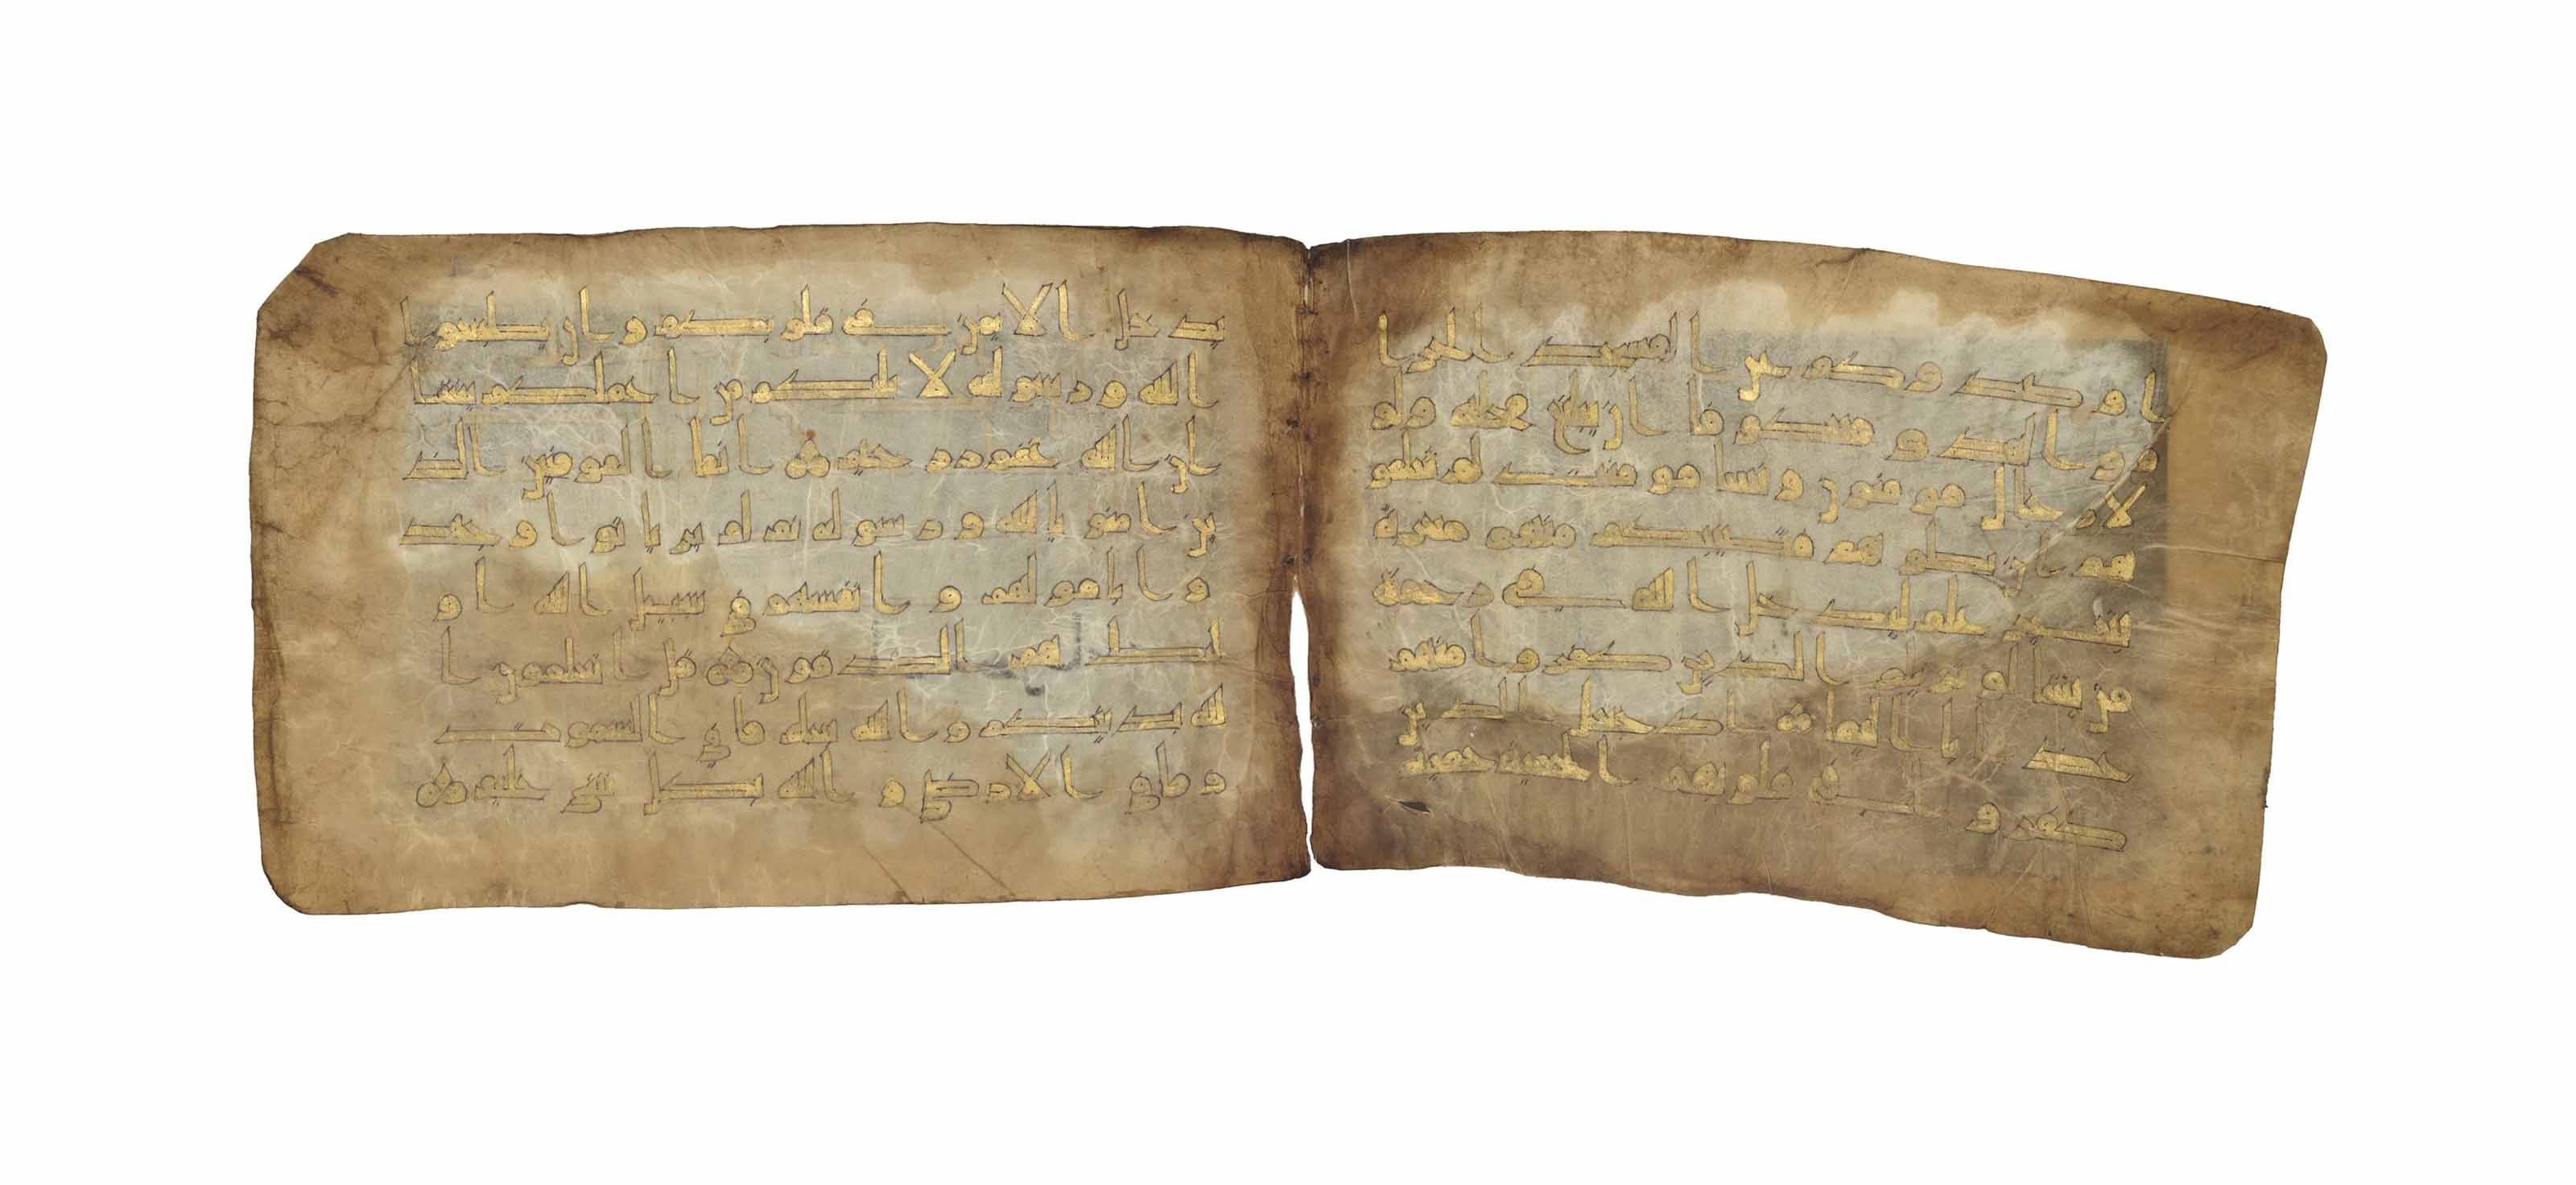 A GOLD KUFIC QUR'AN BIFOLIO